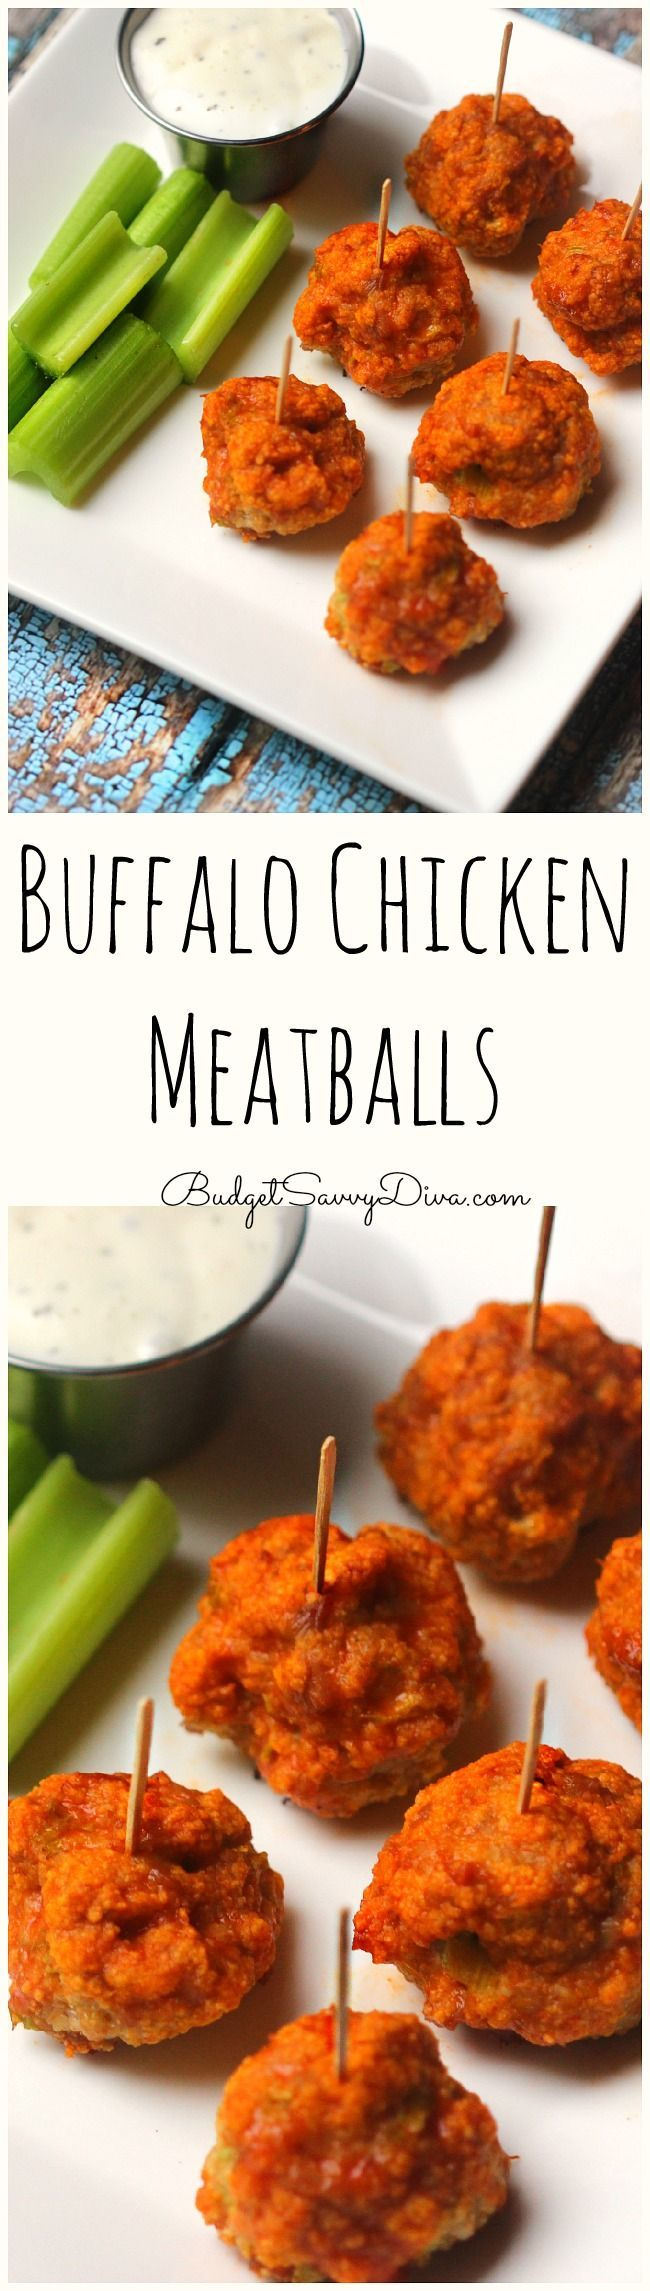 Perfect recipe for snack time or the BIG GAME - Perfect party appetizer recipe - Done in about 30 minutes - Reheats very well - 1 pound of chicken makes about 20 meatballs - Not too spicy - Buffalo Chicken Meatballs Recipe